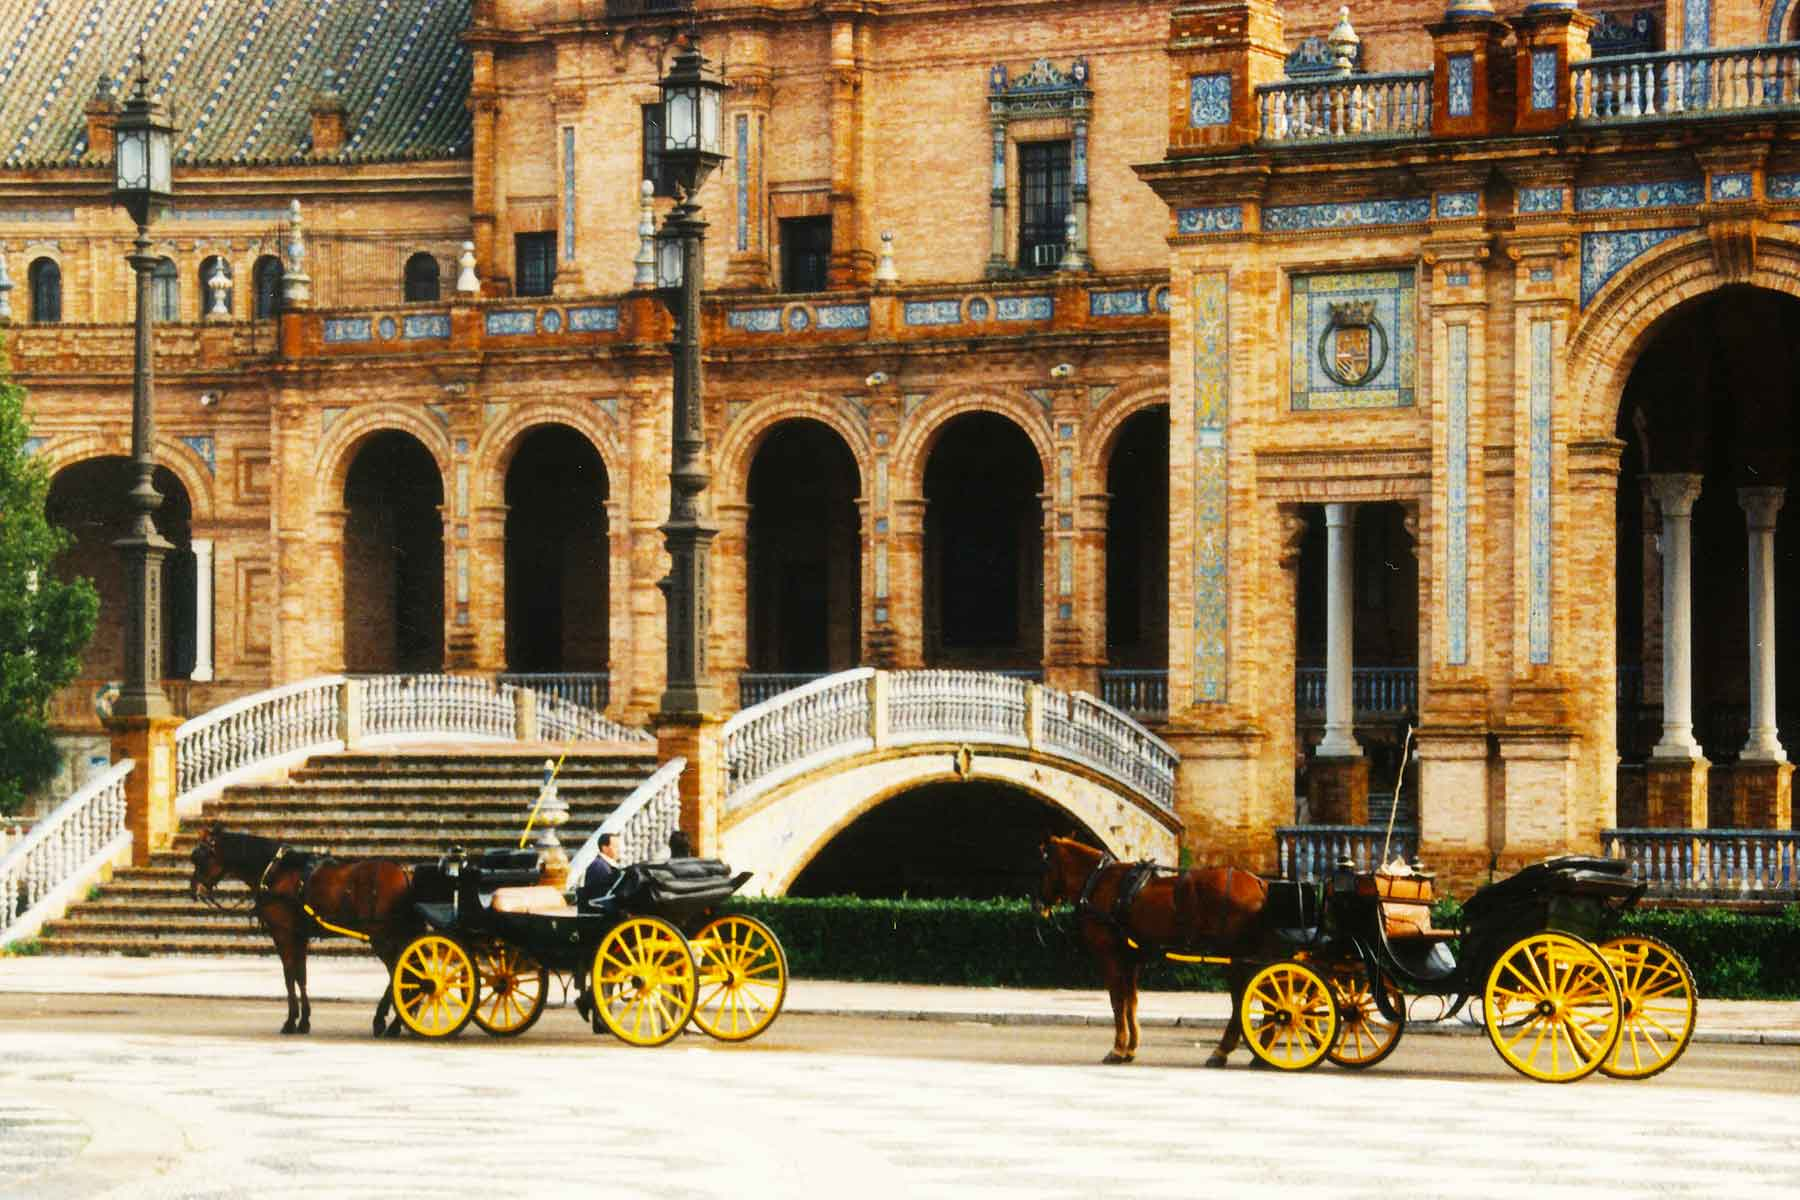 Plaza de Espana - Seville Spain | Steven Andrew Martin - Study Abroad Photo Journal